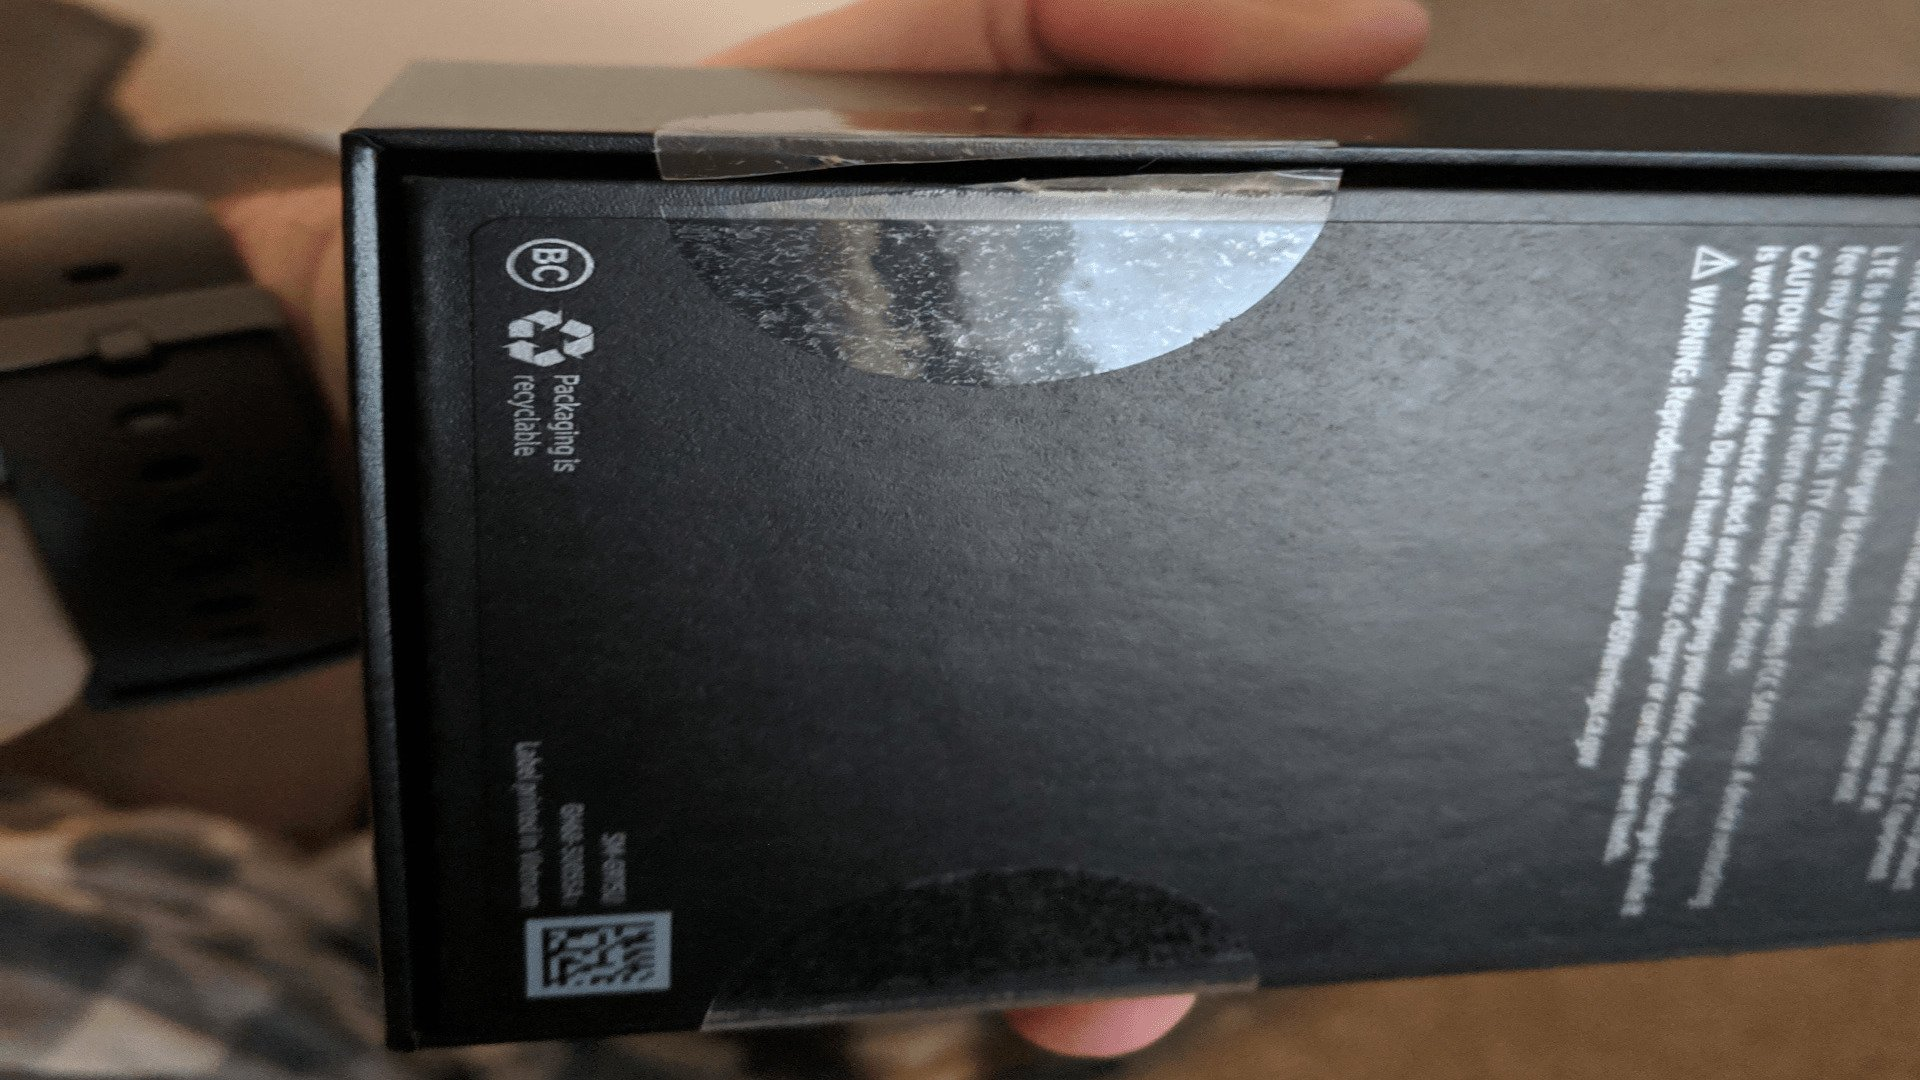 Samsung Galaxy S10 Shipped in an Unsealed Box